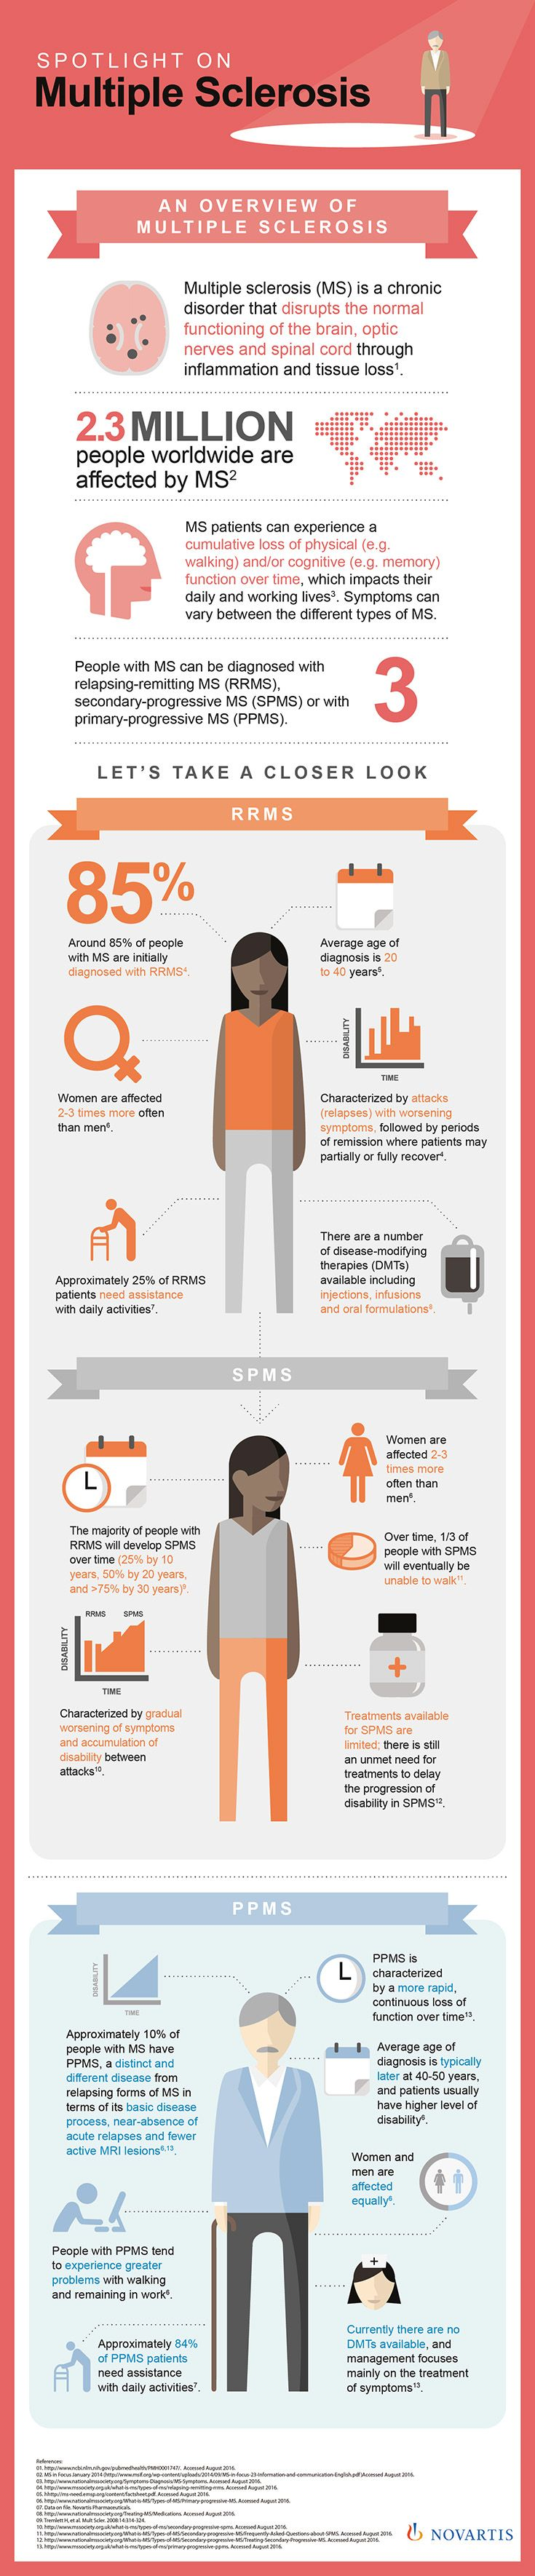 Multiple Sclerosis (MS) is a chronic disorder of the central nervous system which impacts individuals' daily and working lives. It affects approximately 2.3 million people worldwide.